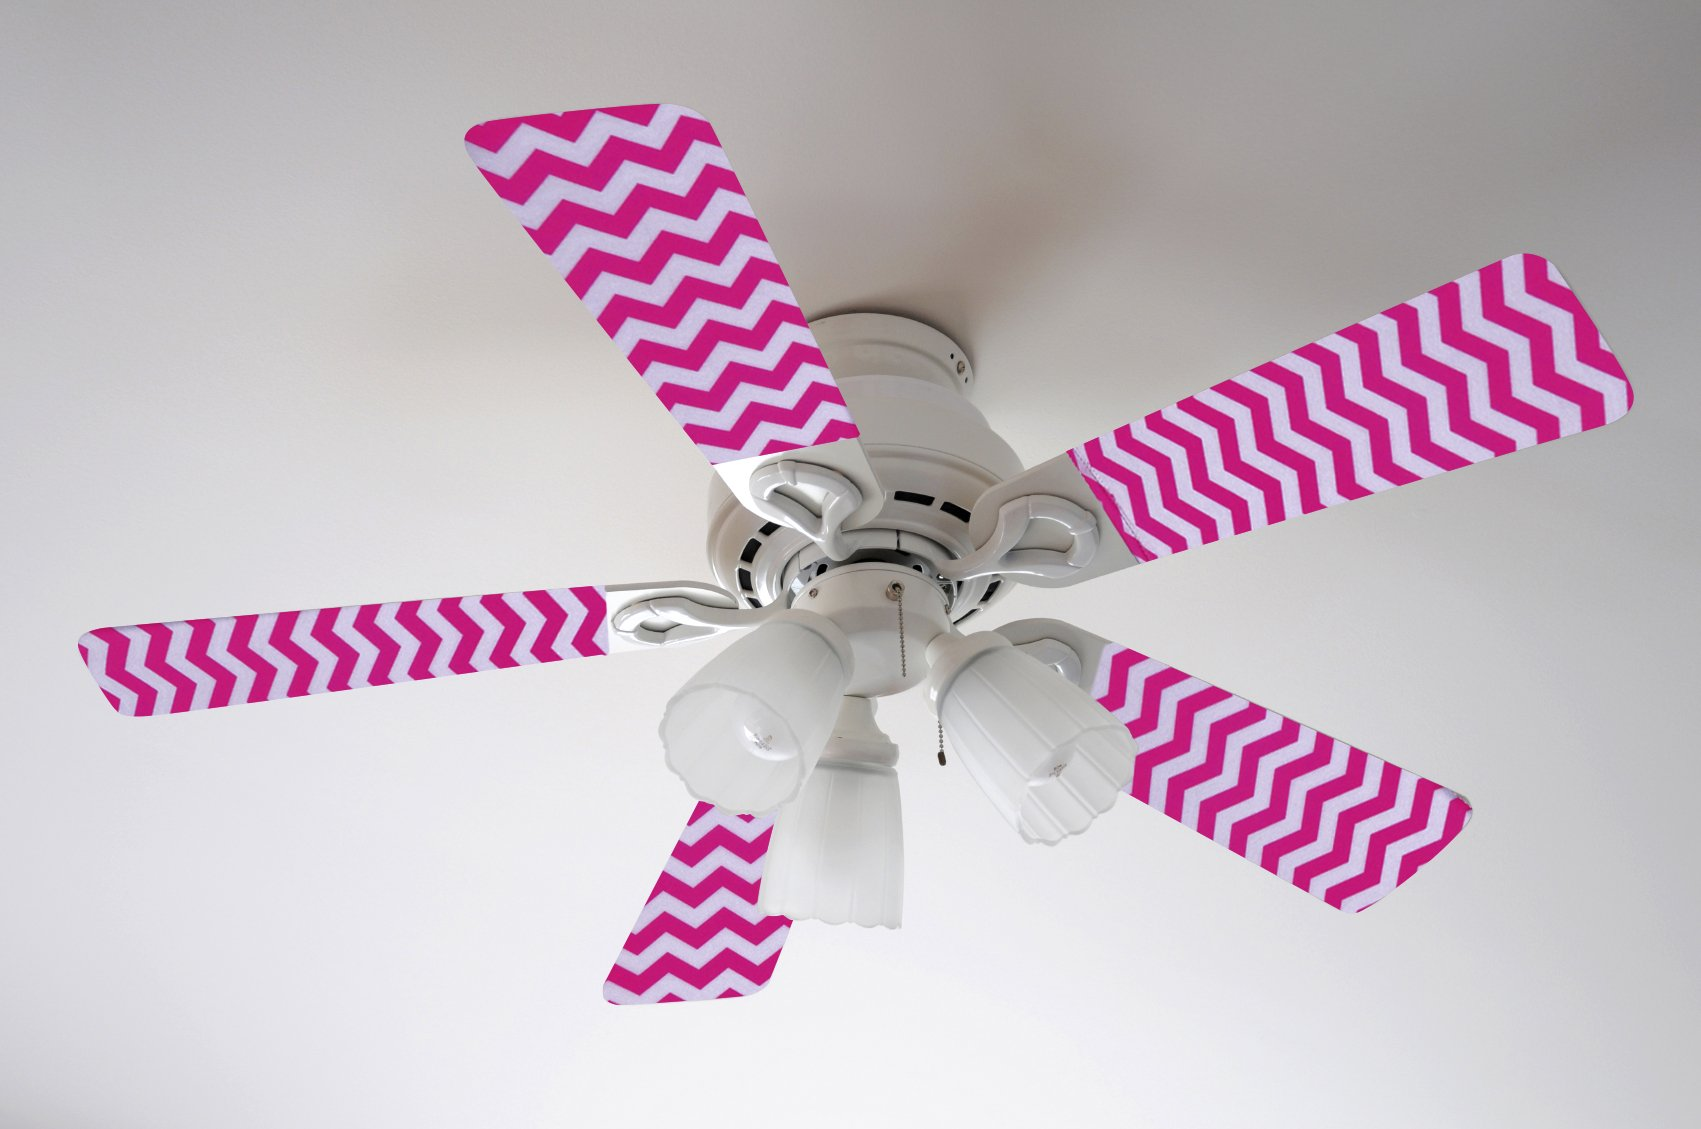 Fancy Blade Ceiling Fan Accessories Blade Cover Decoration, Pink Chevron Small